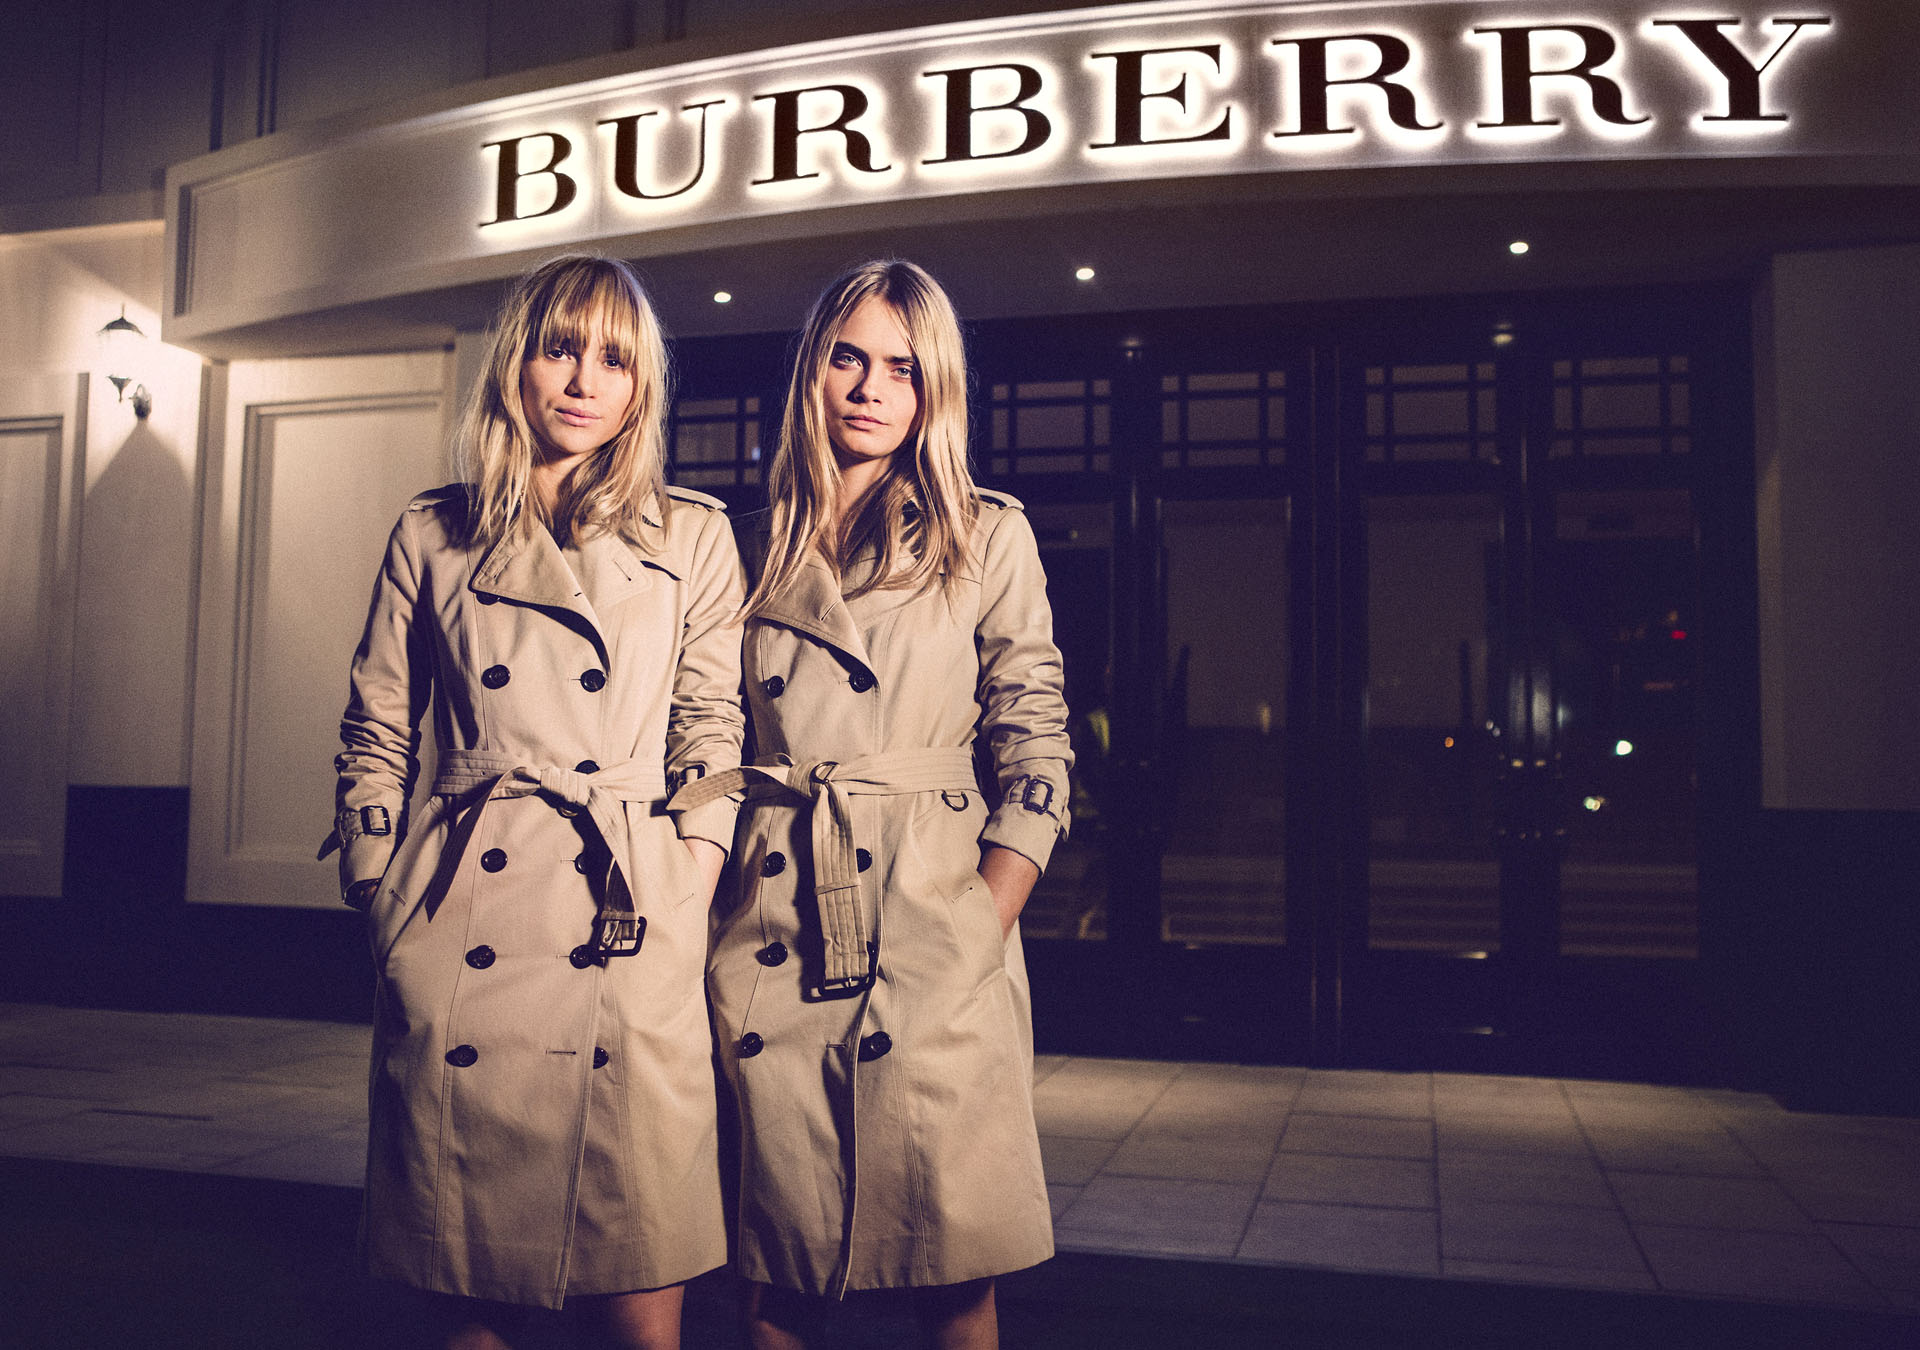 SHANGHAI, CHINA - APRIL 24: Models Suki Waterhouse and Cara Delevingne attend the Burberry brings London to Shanghai event on April 24, 2014 in Shanghai, China. (Photo by Getty Images for Burberry)